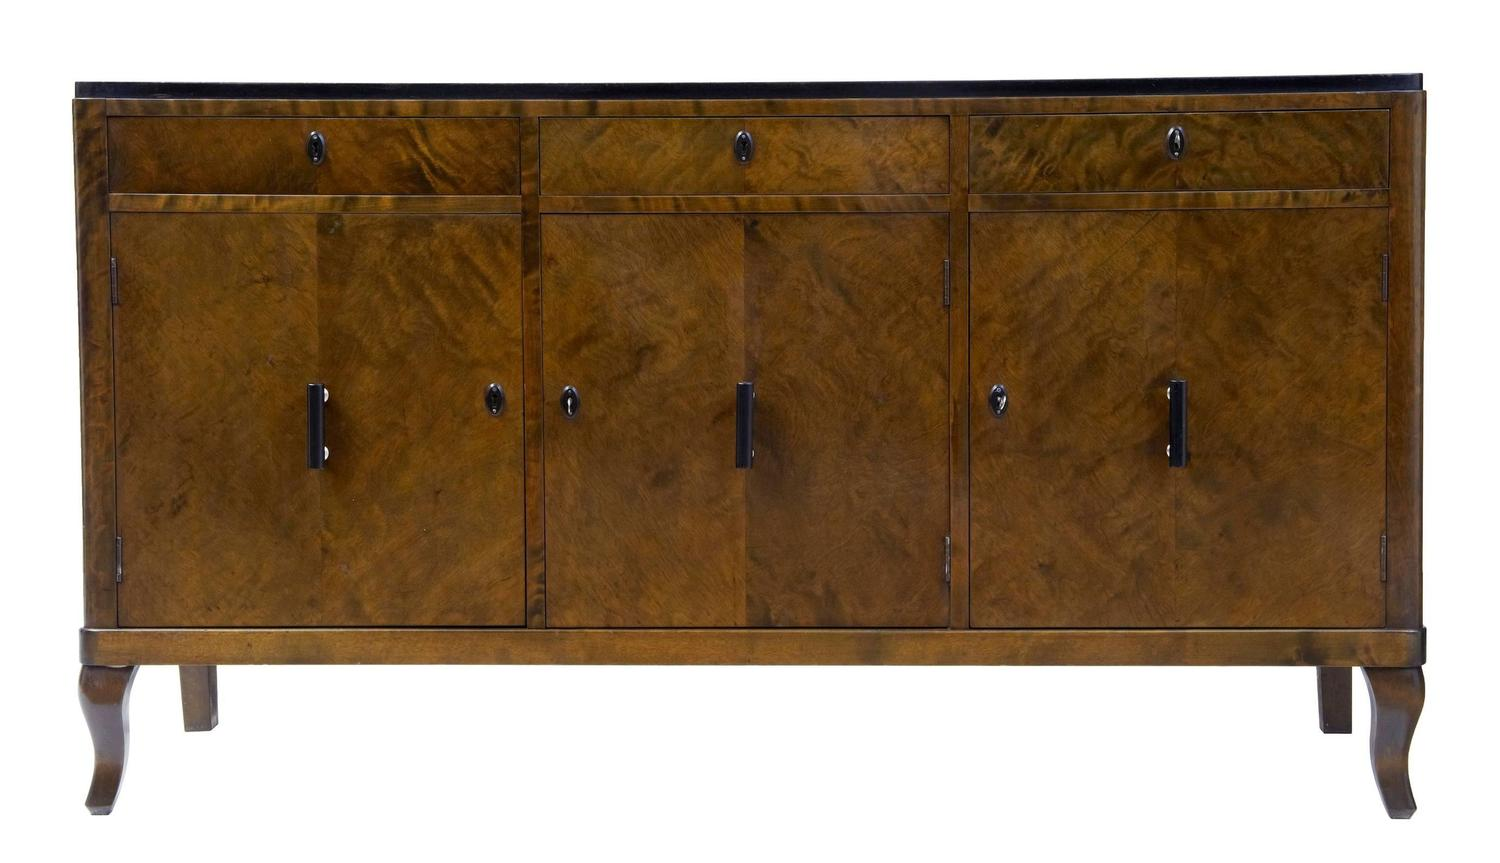 20th century deco birch sideboard at 1stdibs